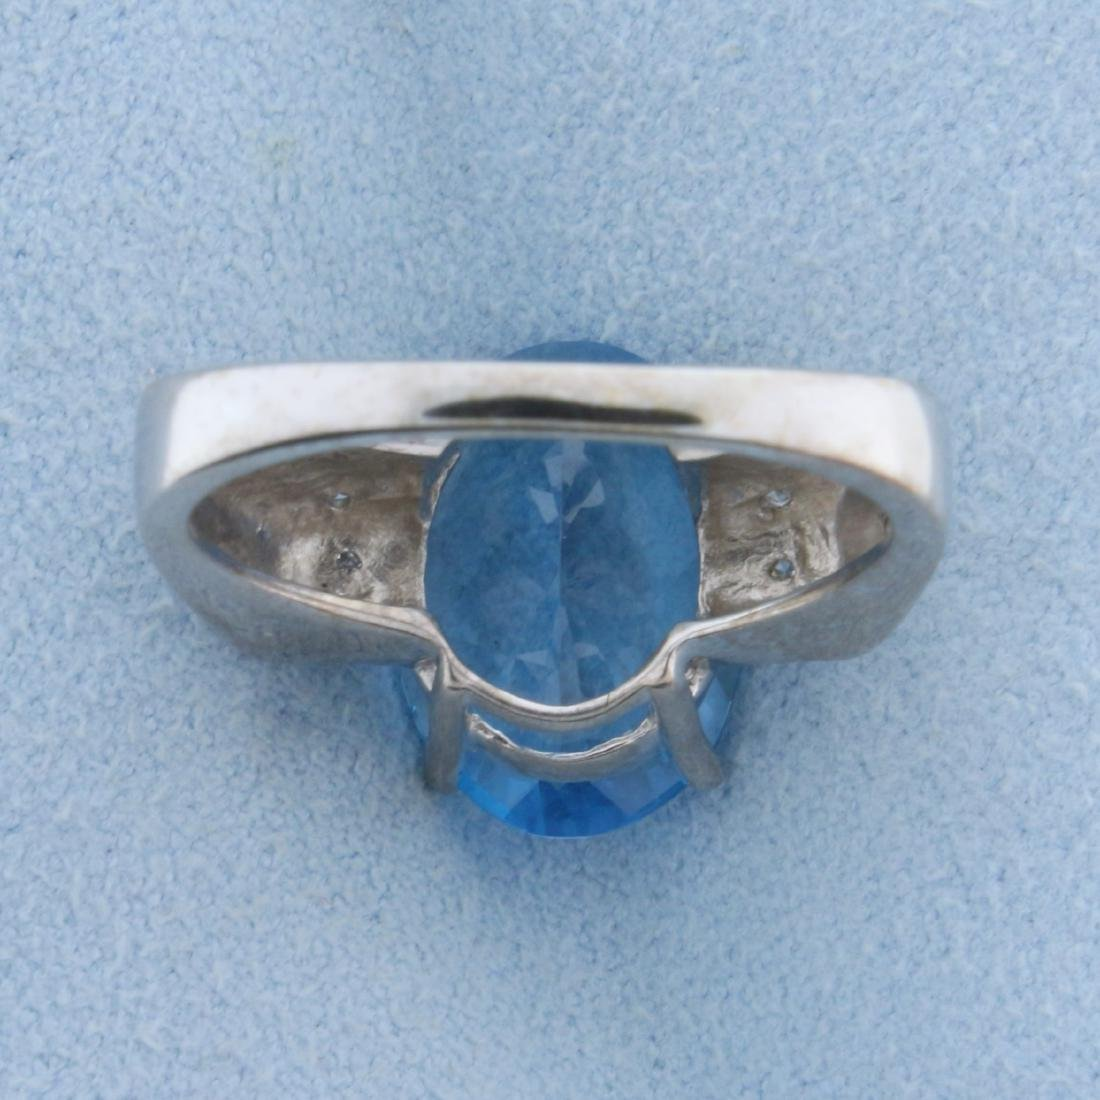 6ct Swiss Blue Topaz and Diamond Ring in 18K White Gold - 3